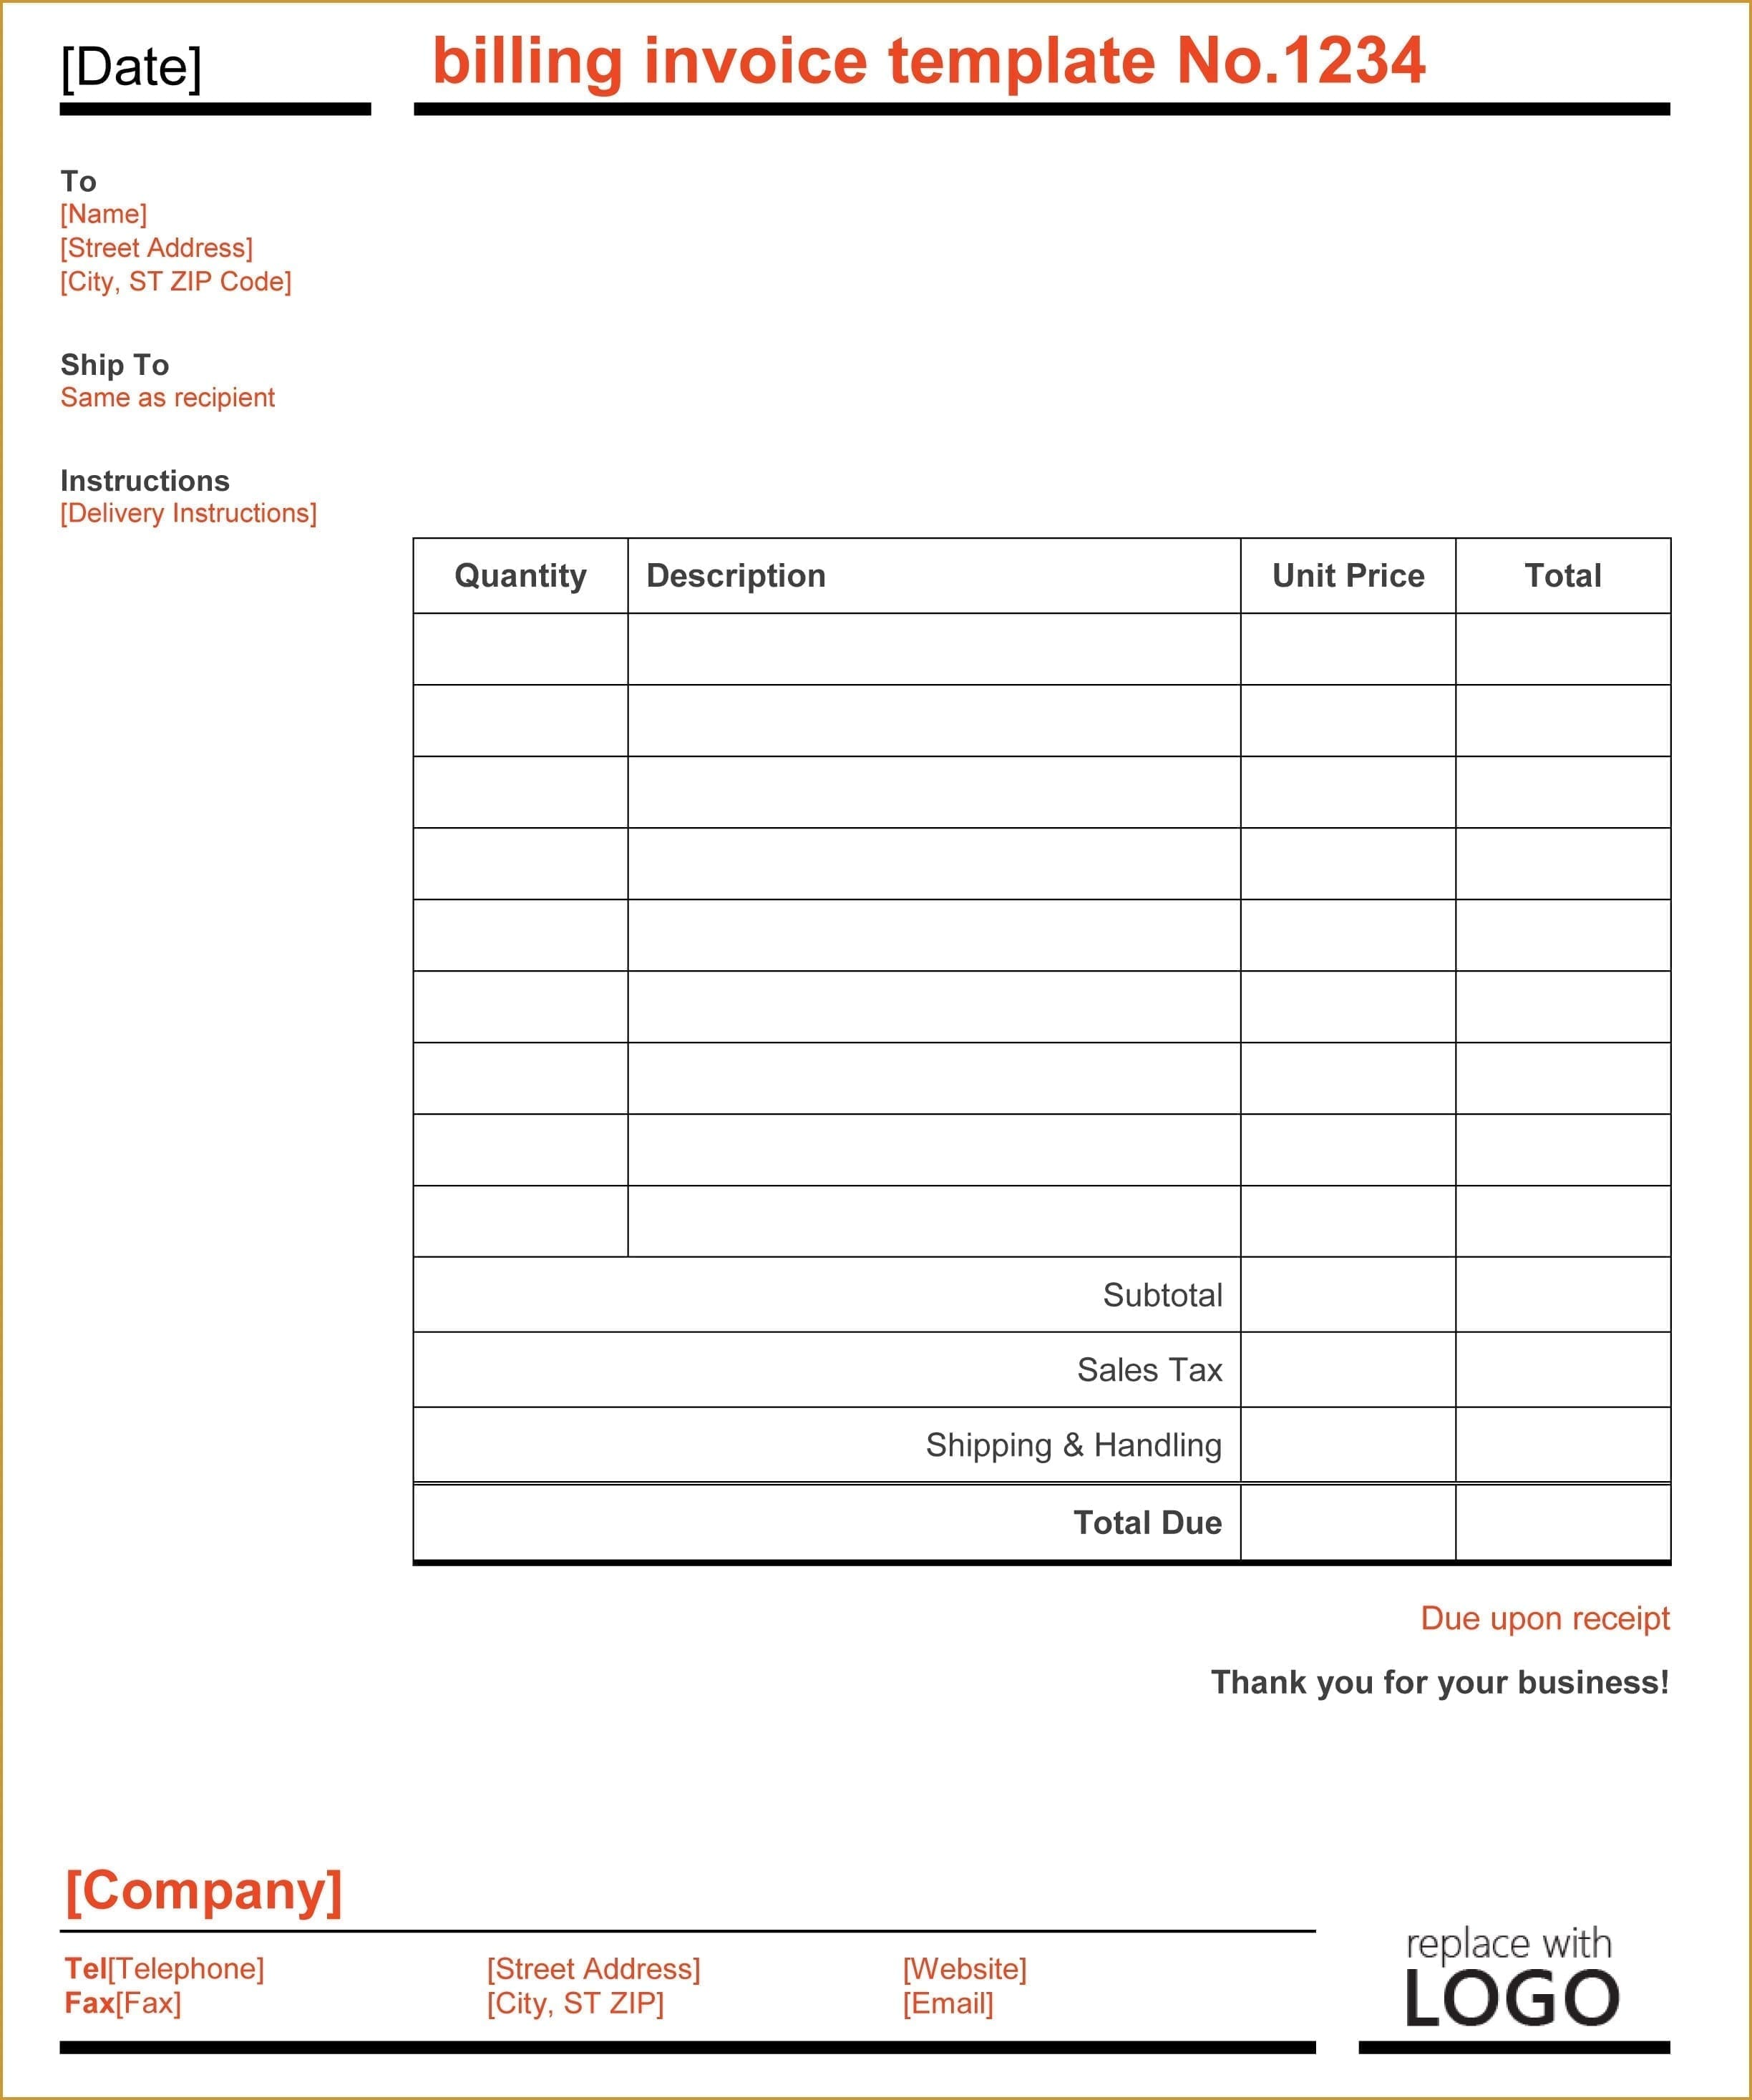 Microsoft Word Freelance Invoice Template Microsoft Word Billing Invoice Template Microsoft Word 2010 Invoice Template Invoice Templates For Microsoft Word Mac Invoice Template For Microsoft Word 2000 Microsoft Word Invoice Template Free Download Free Office Invoice